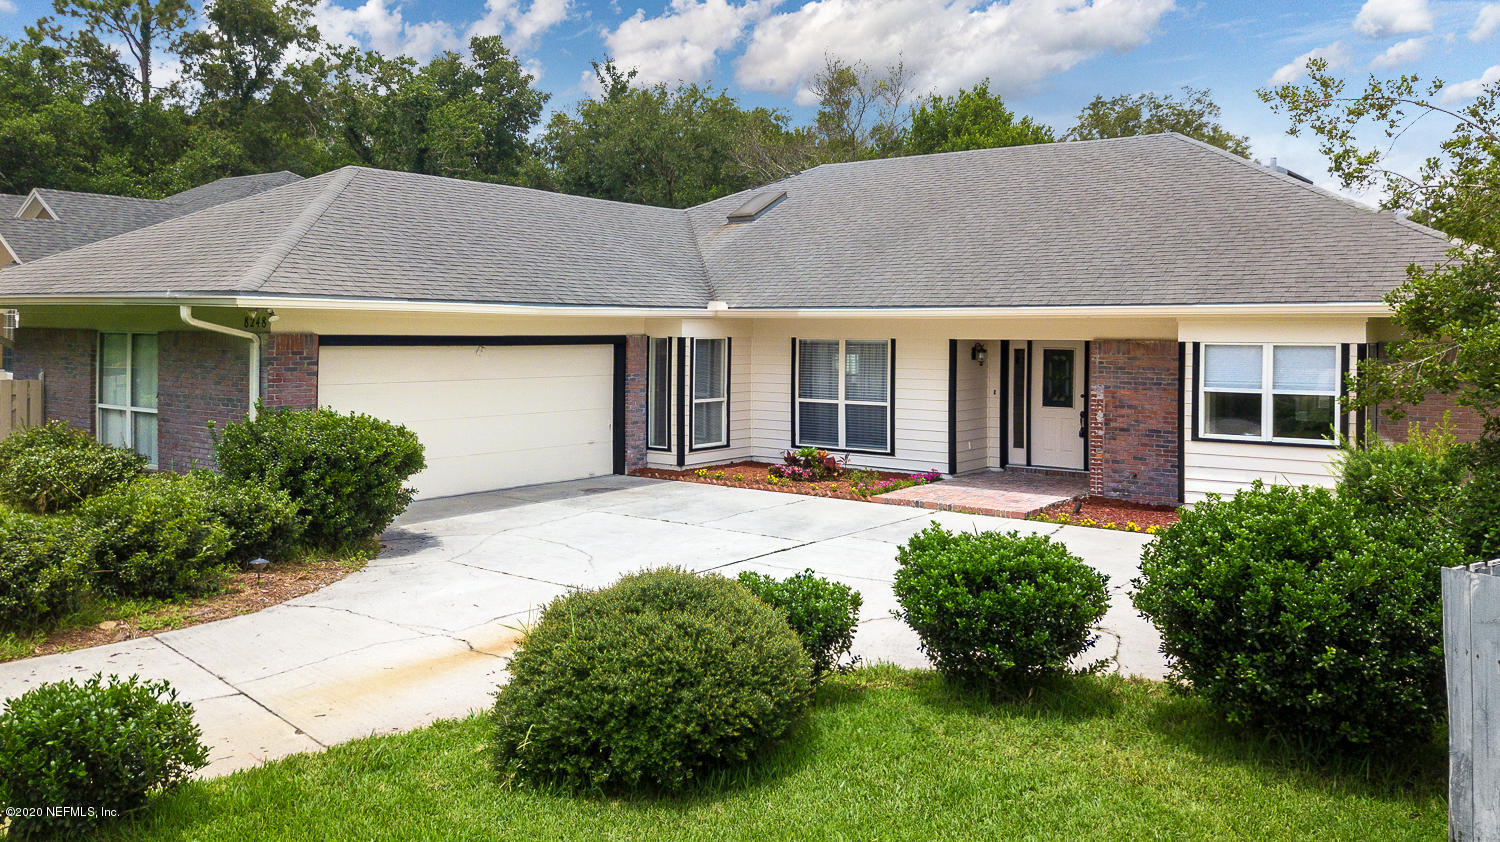 8248 GARDEN VIEW, JACKSONVILLE, FLORIDA 32256, 3 Bedrooms Bedrooms, ,2 BathroomsBathrooms,Residential,For sale,GARDEN VIEW,1059553